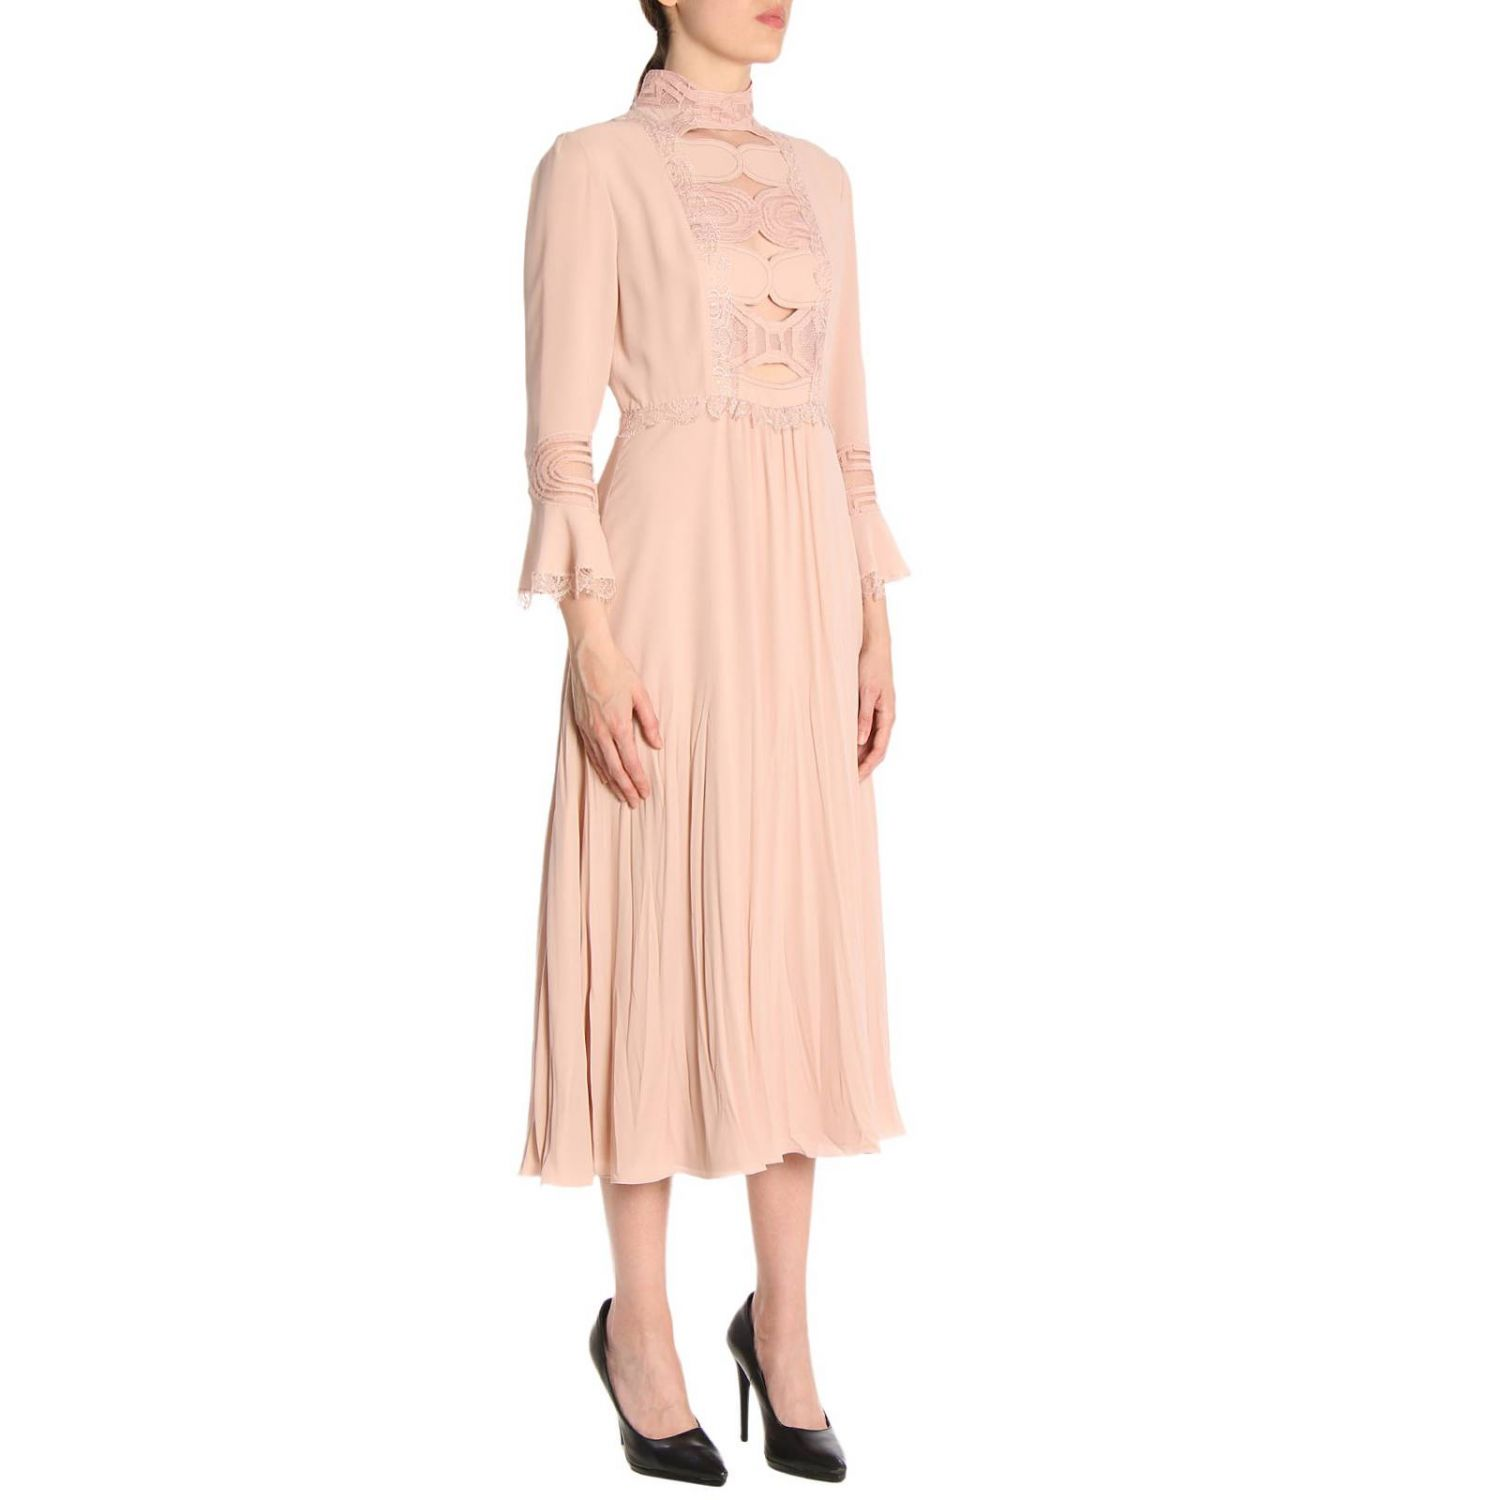 Dress Bottega Veneta: Dress women Bottega Veneta blush pink 2